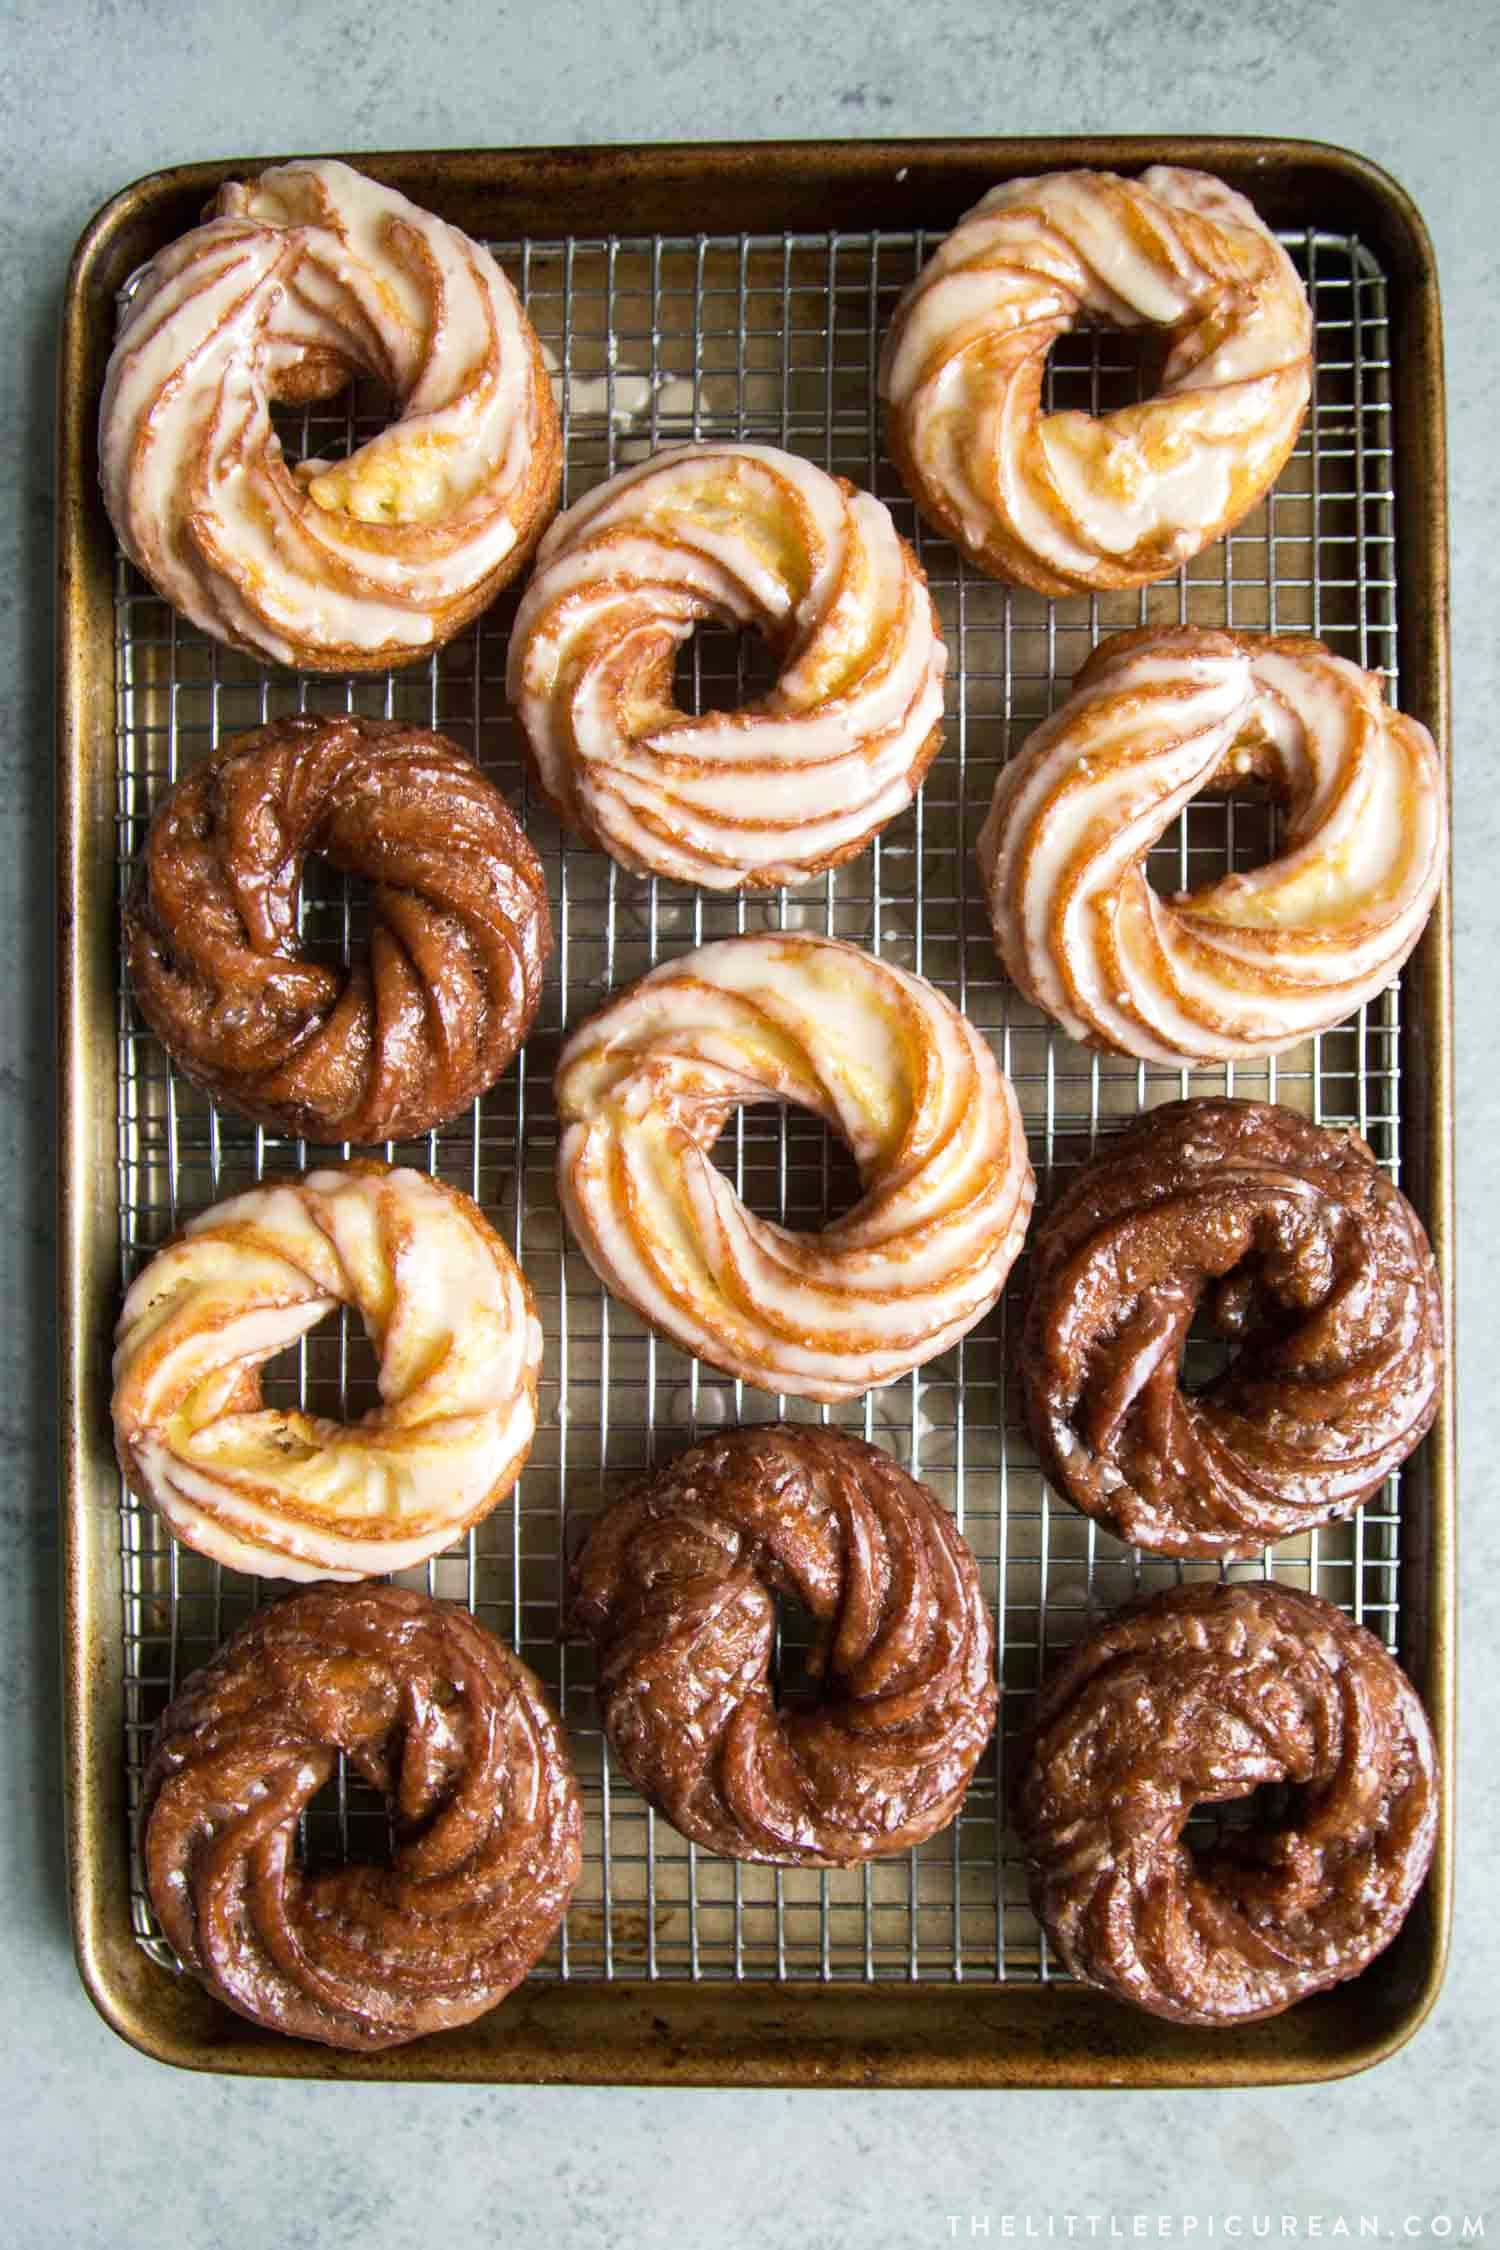 Assorted Crullers Doughnuts